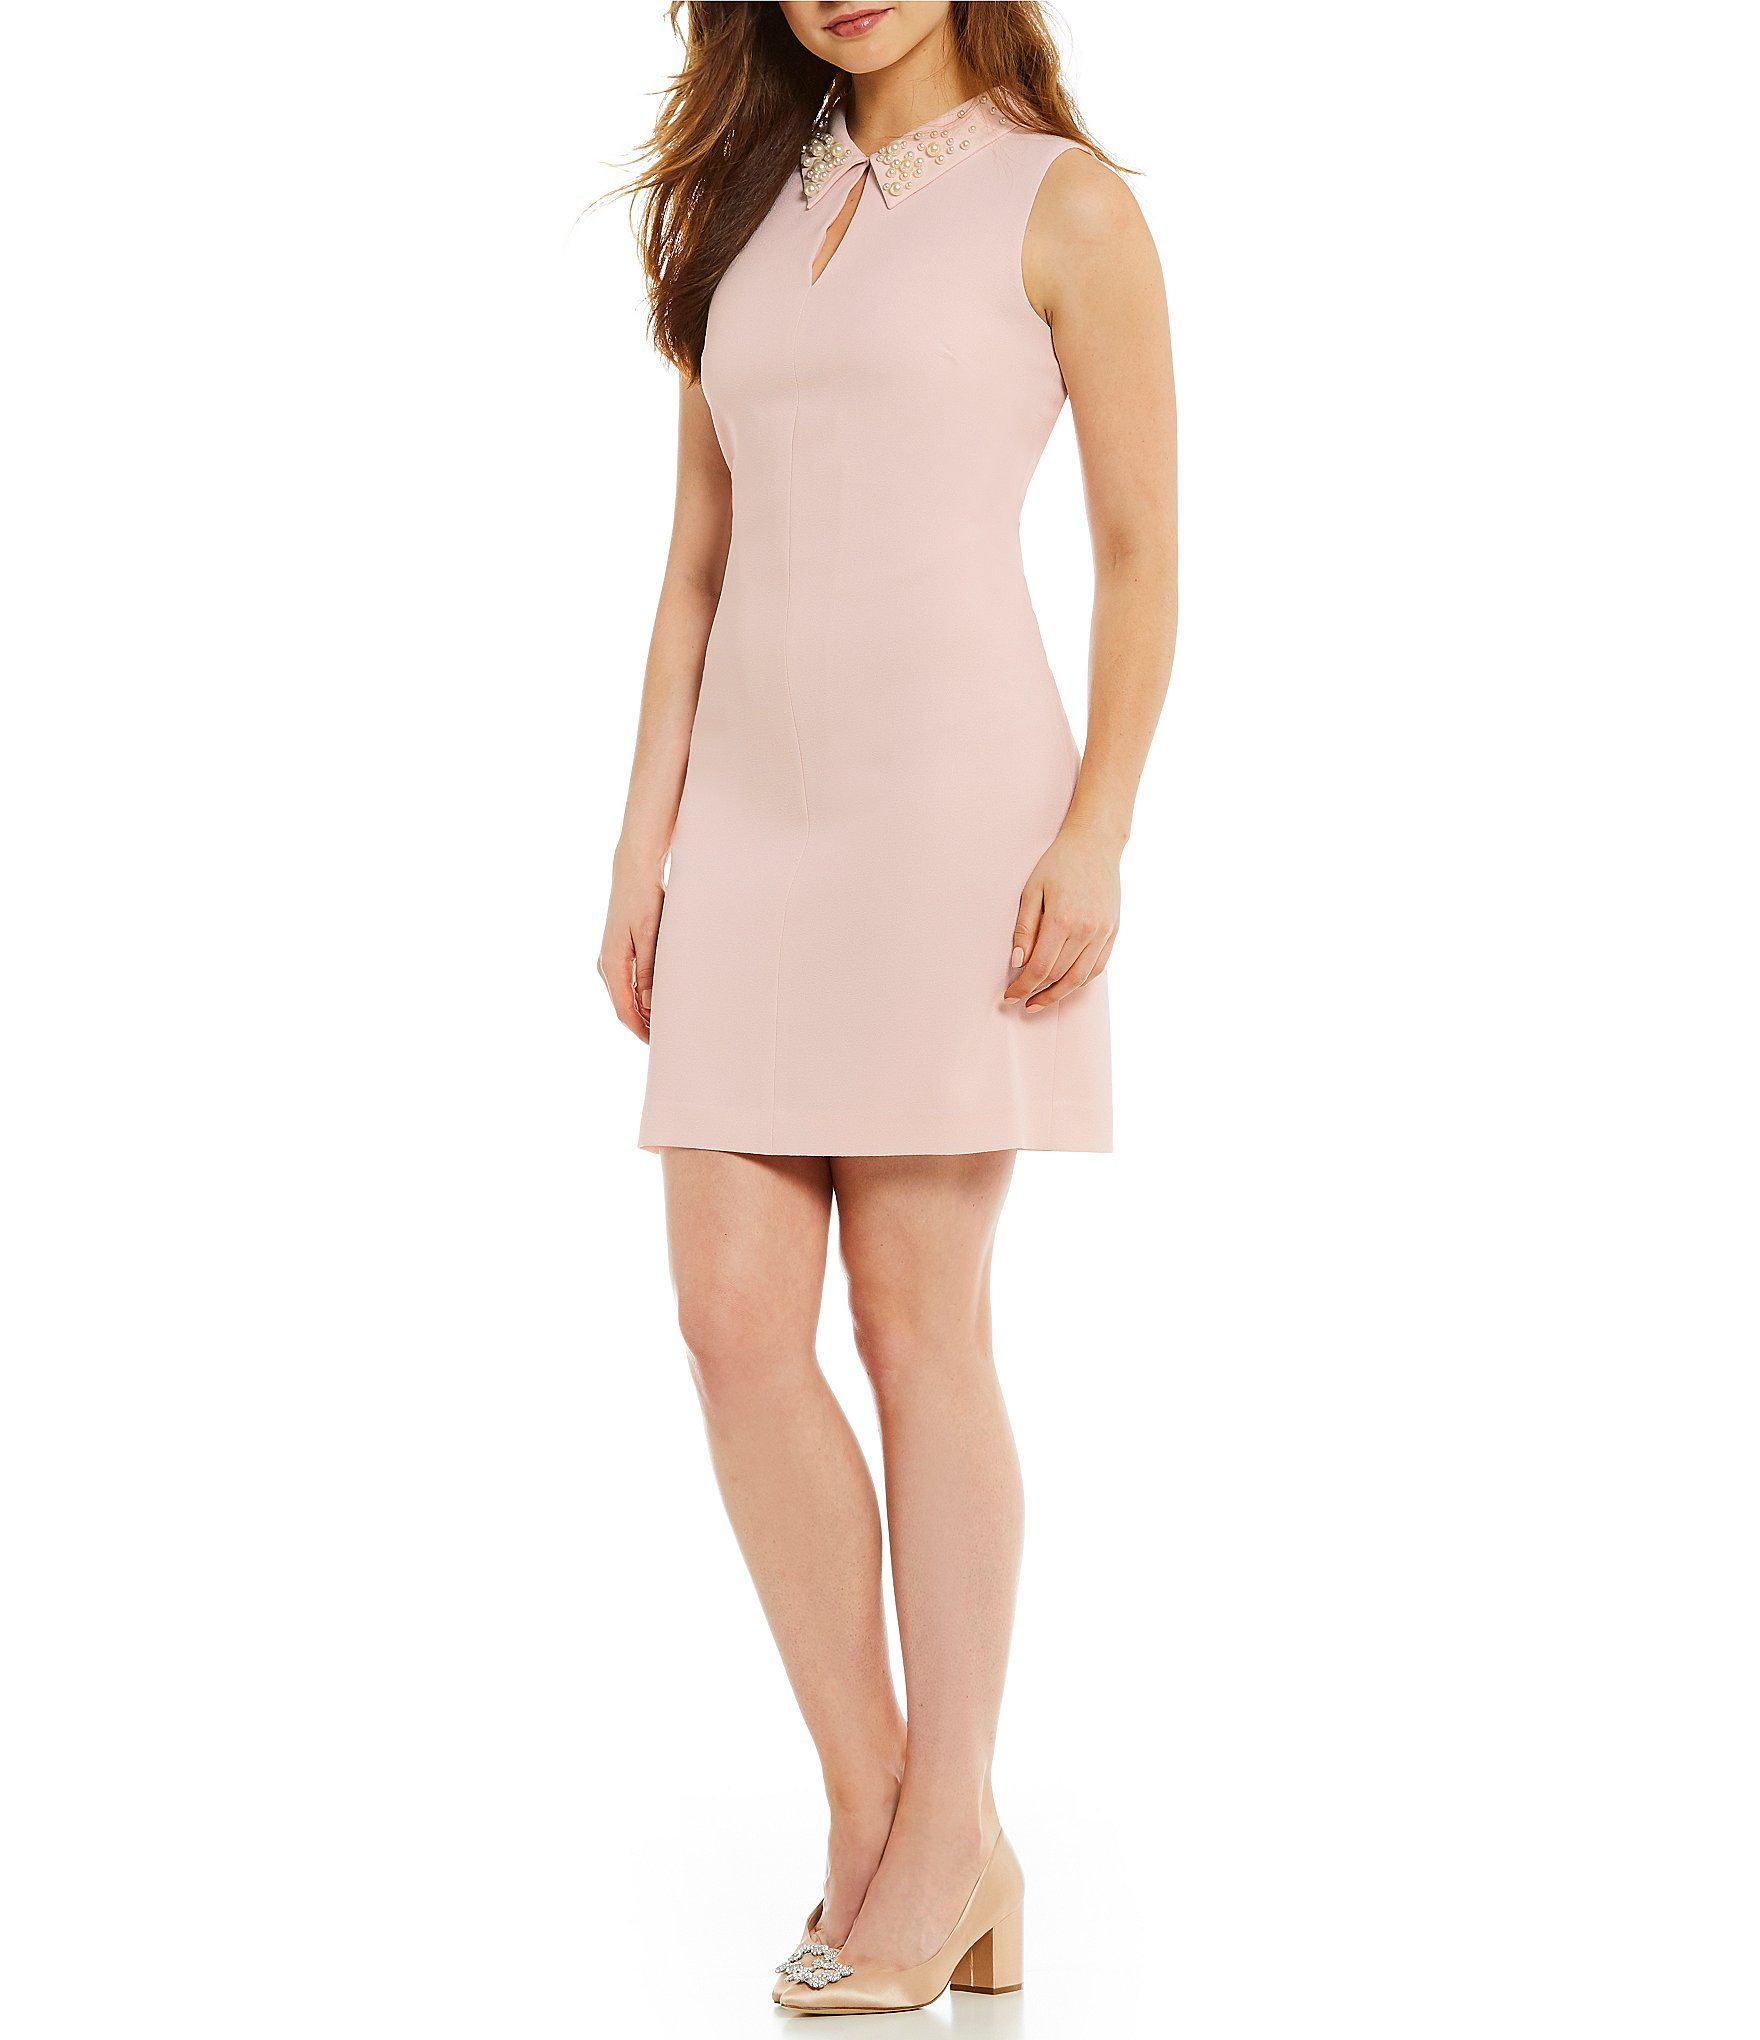 4993d0ebce0 Shop for KARL LAGERFELD PARIS Pearl Collar Sheath Dress at Dillards.com.  Visit Dillards.com to find clothing